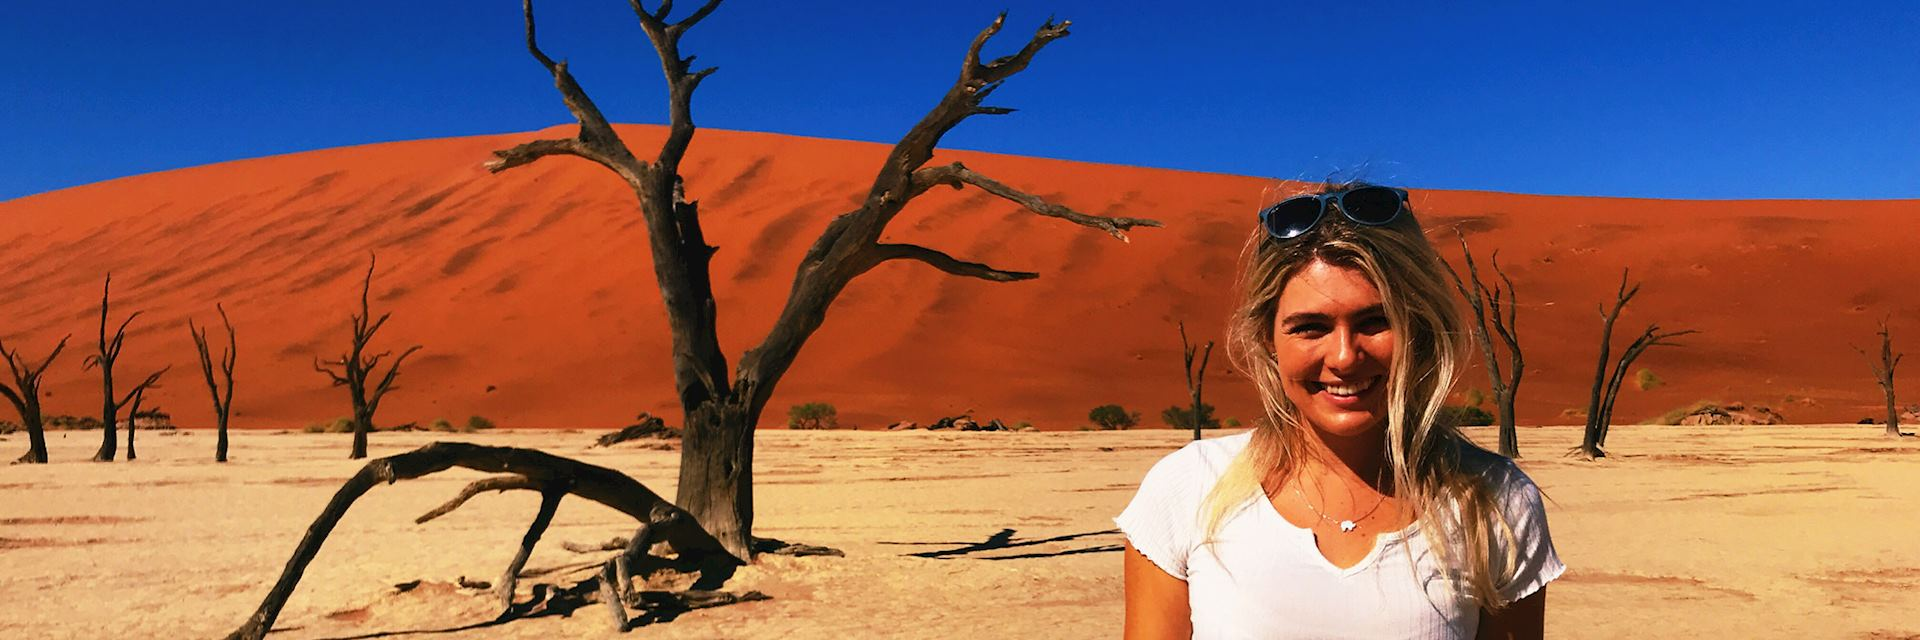 Catherine visiting Dead Vlei, Namibia